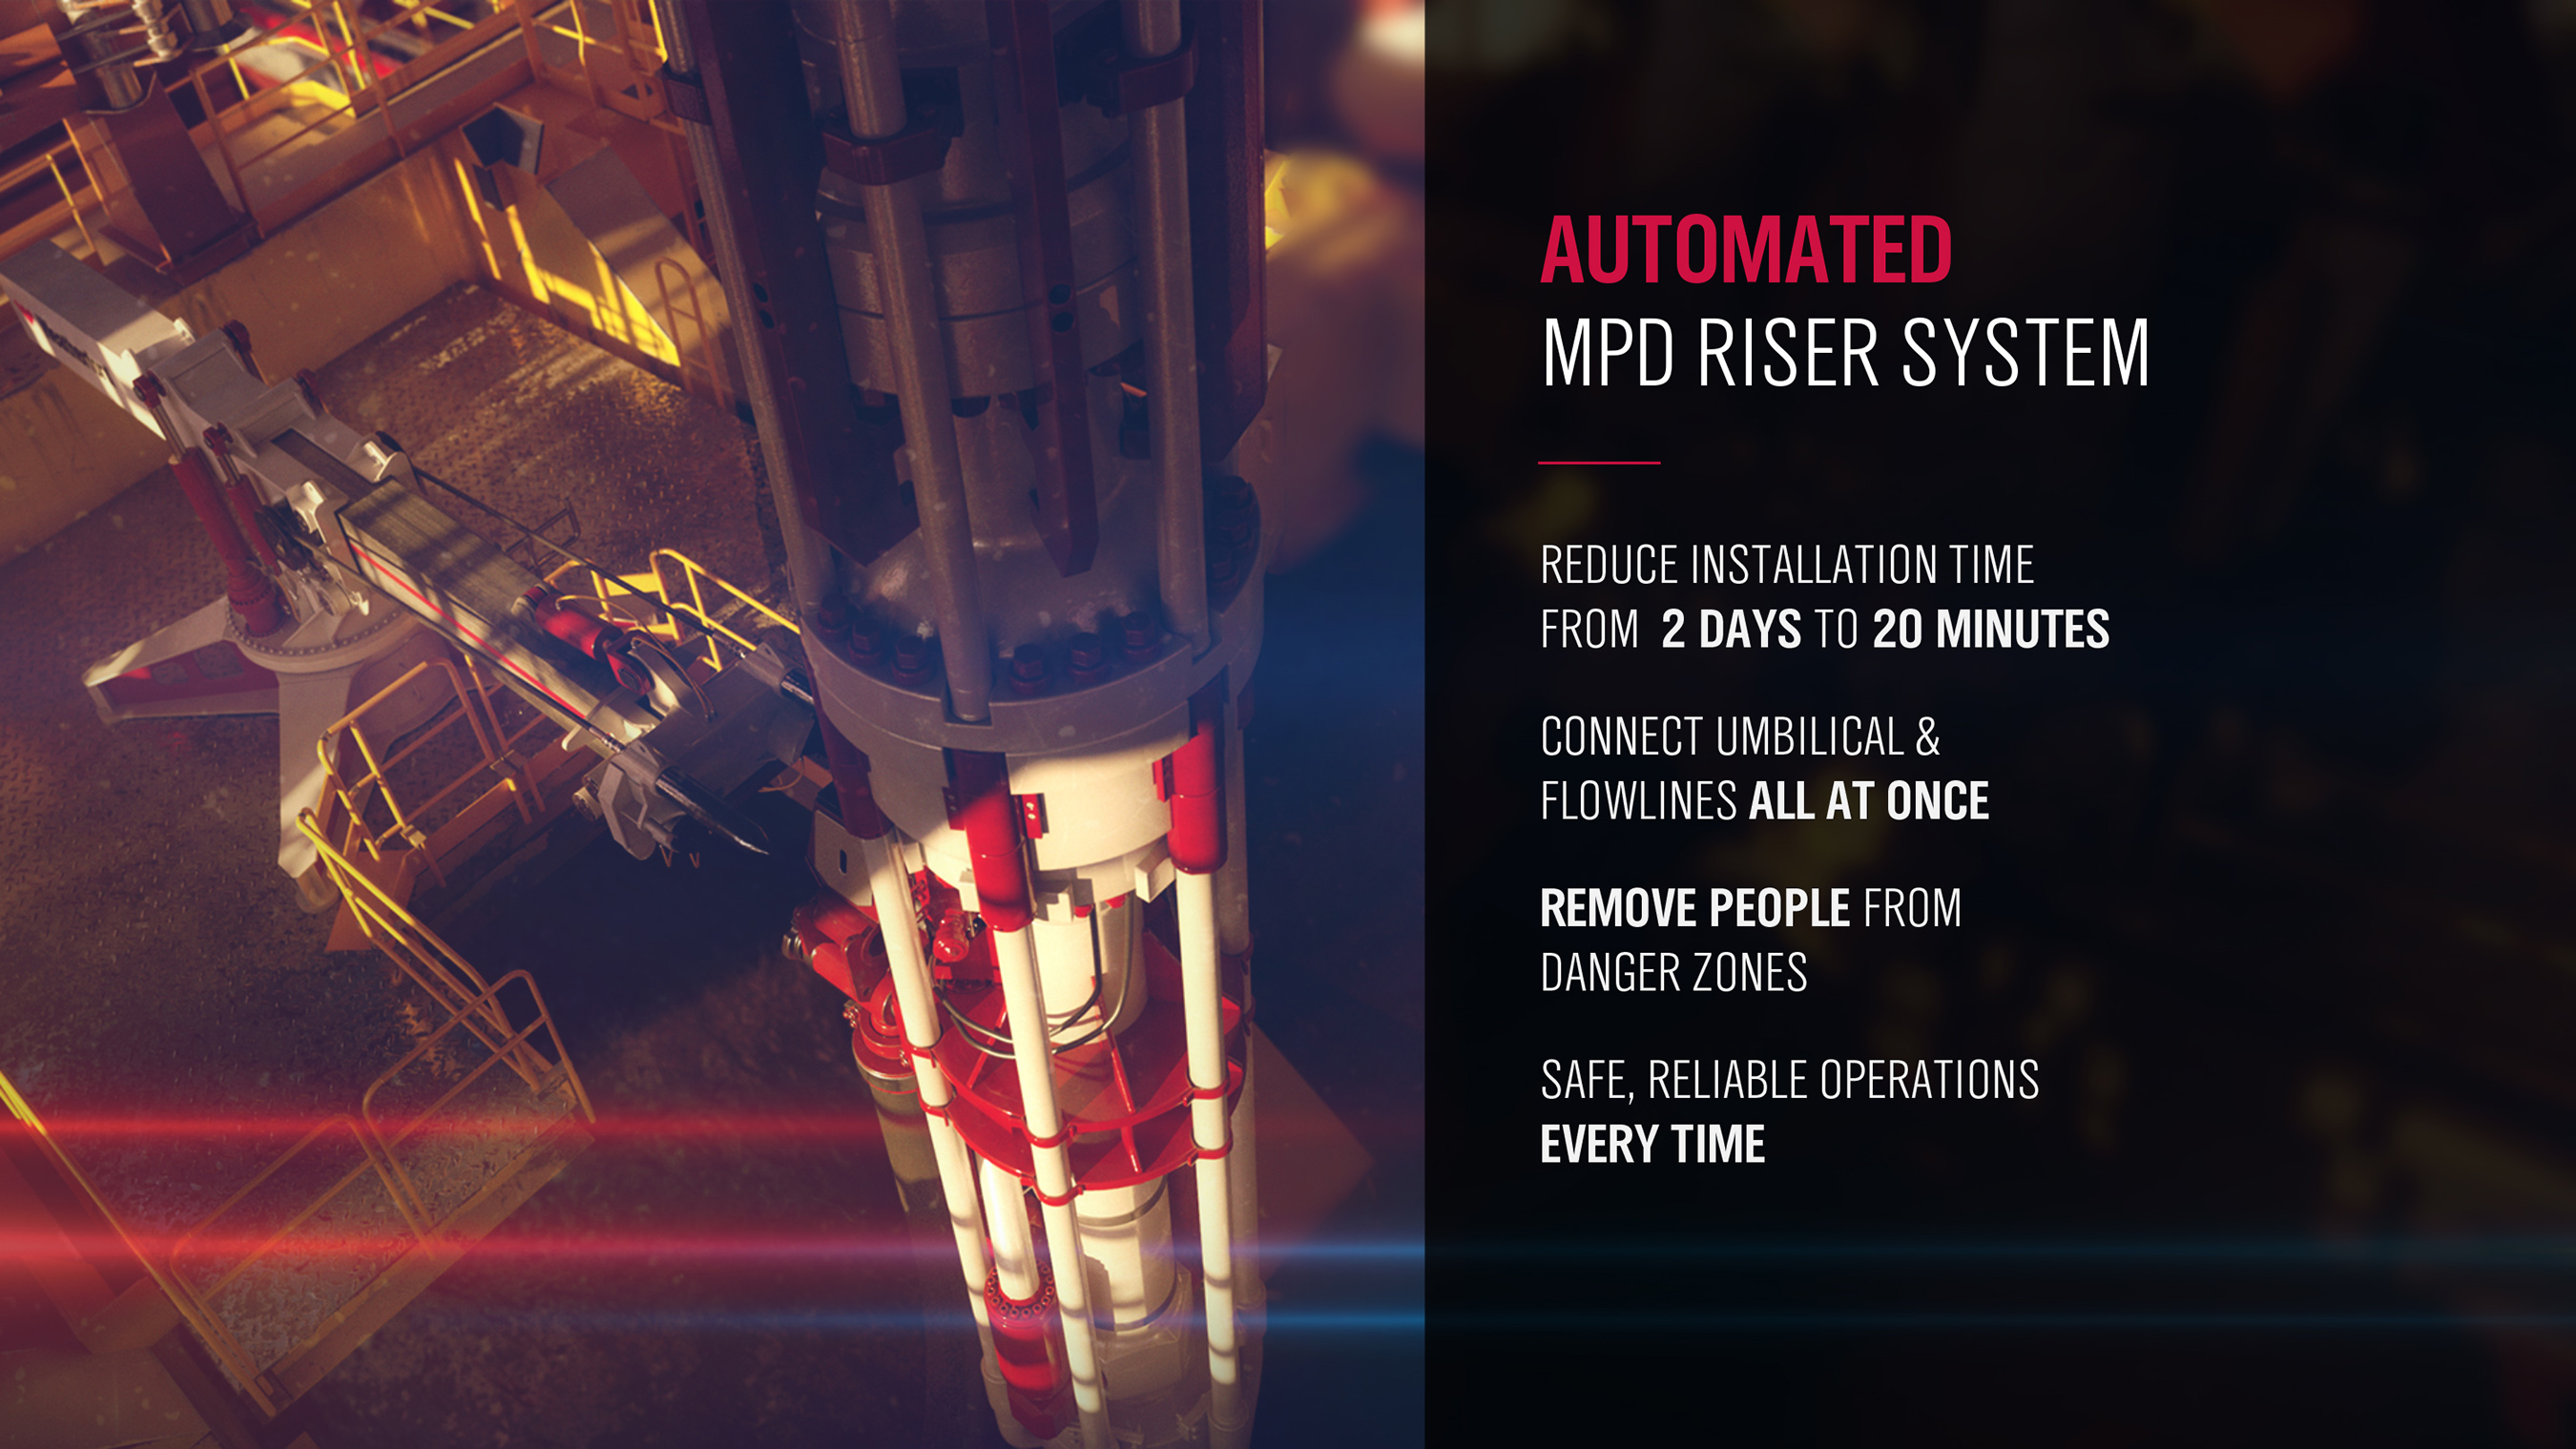 Automated MPD Riser System